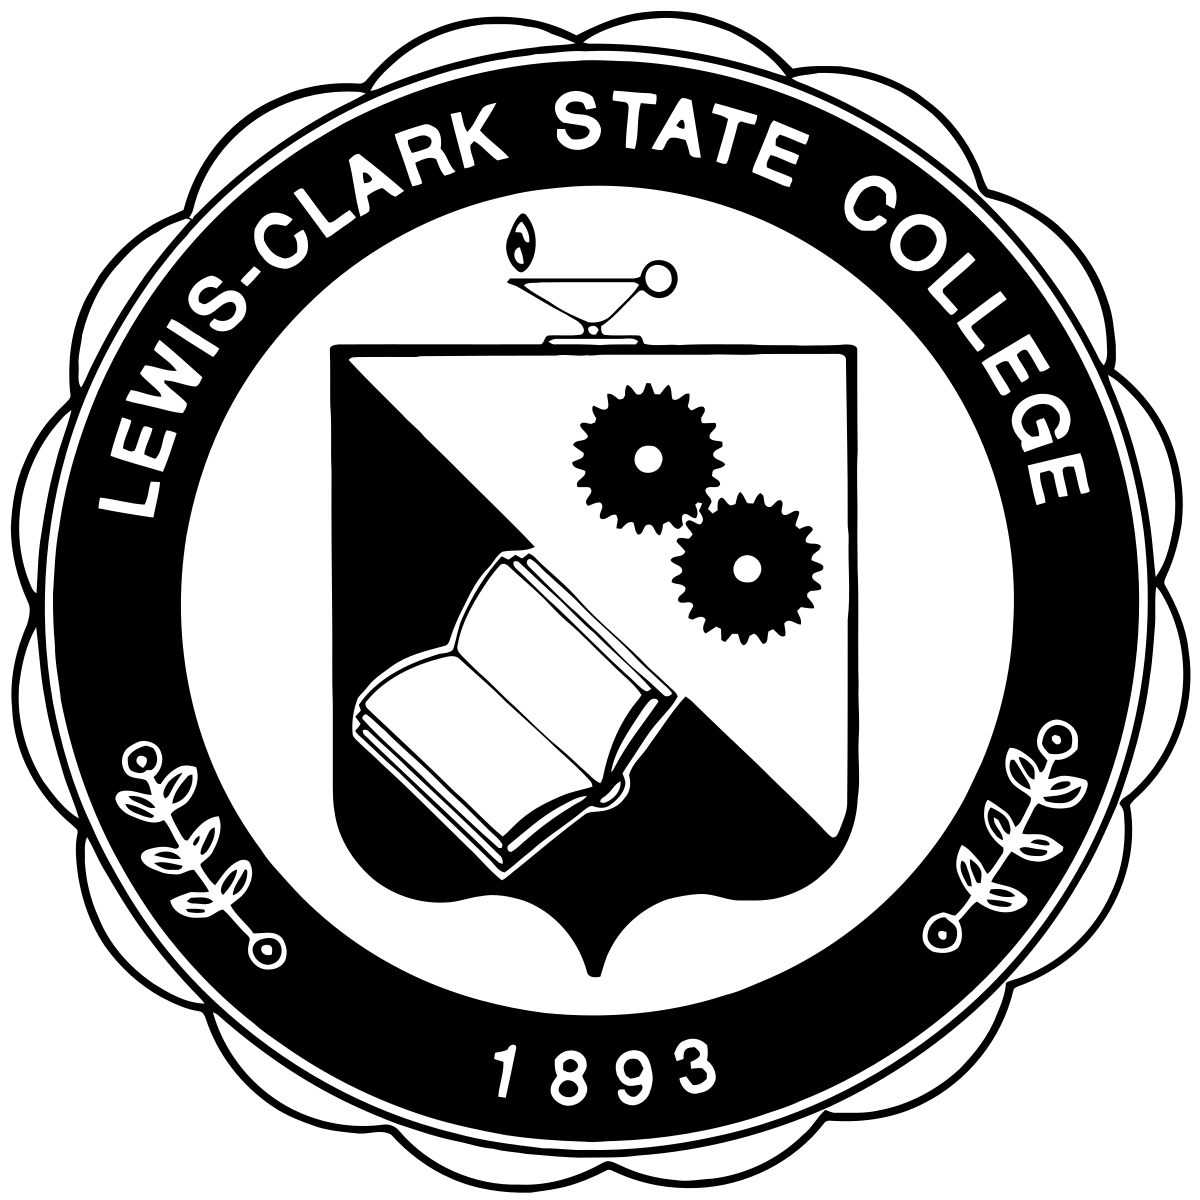 College money black and white clipart clipart royalty free stock Lewis–Clark State College - Wikipedia clipart royalty free stock